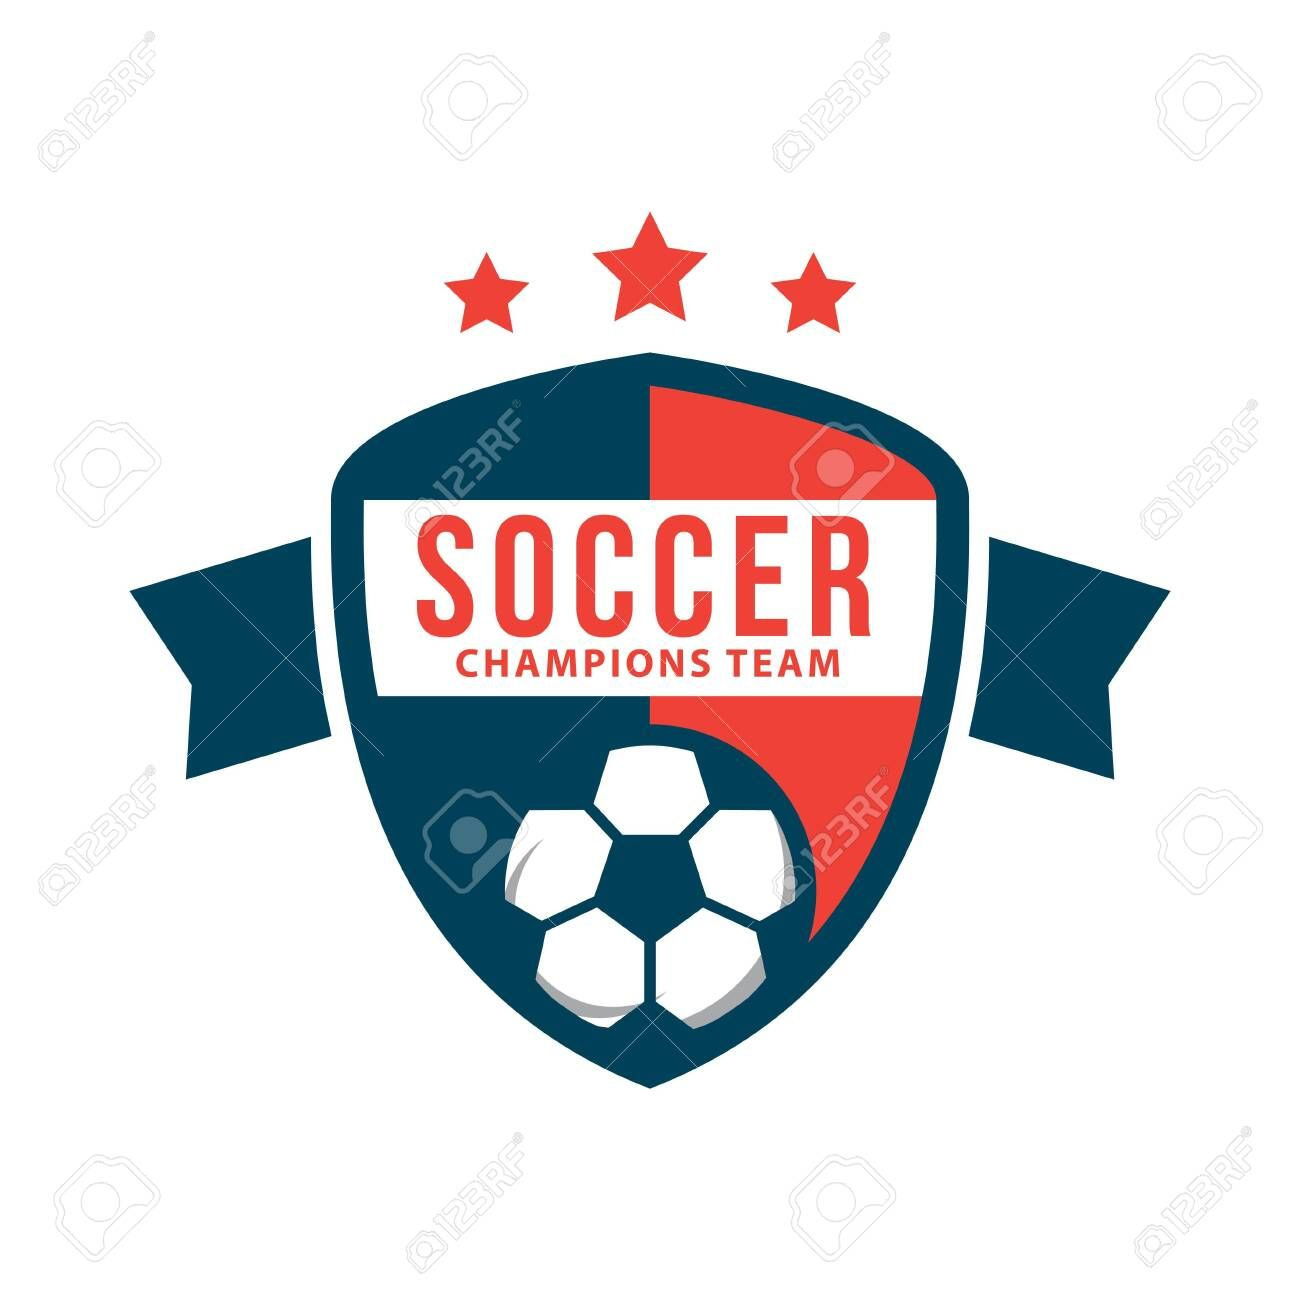 Soccer Club Logo Vector Template Design Illustration Affiliate Logo Club Soccer Vector Illustration In 2020 Creative Logo Cards Creative